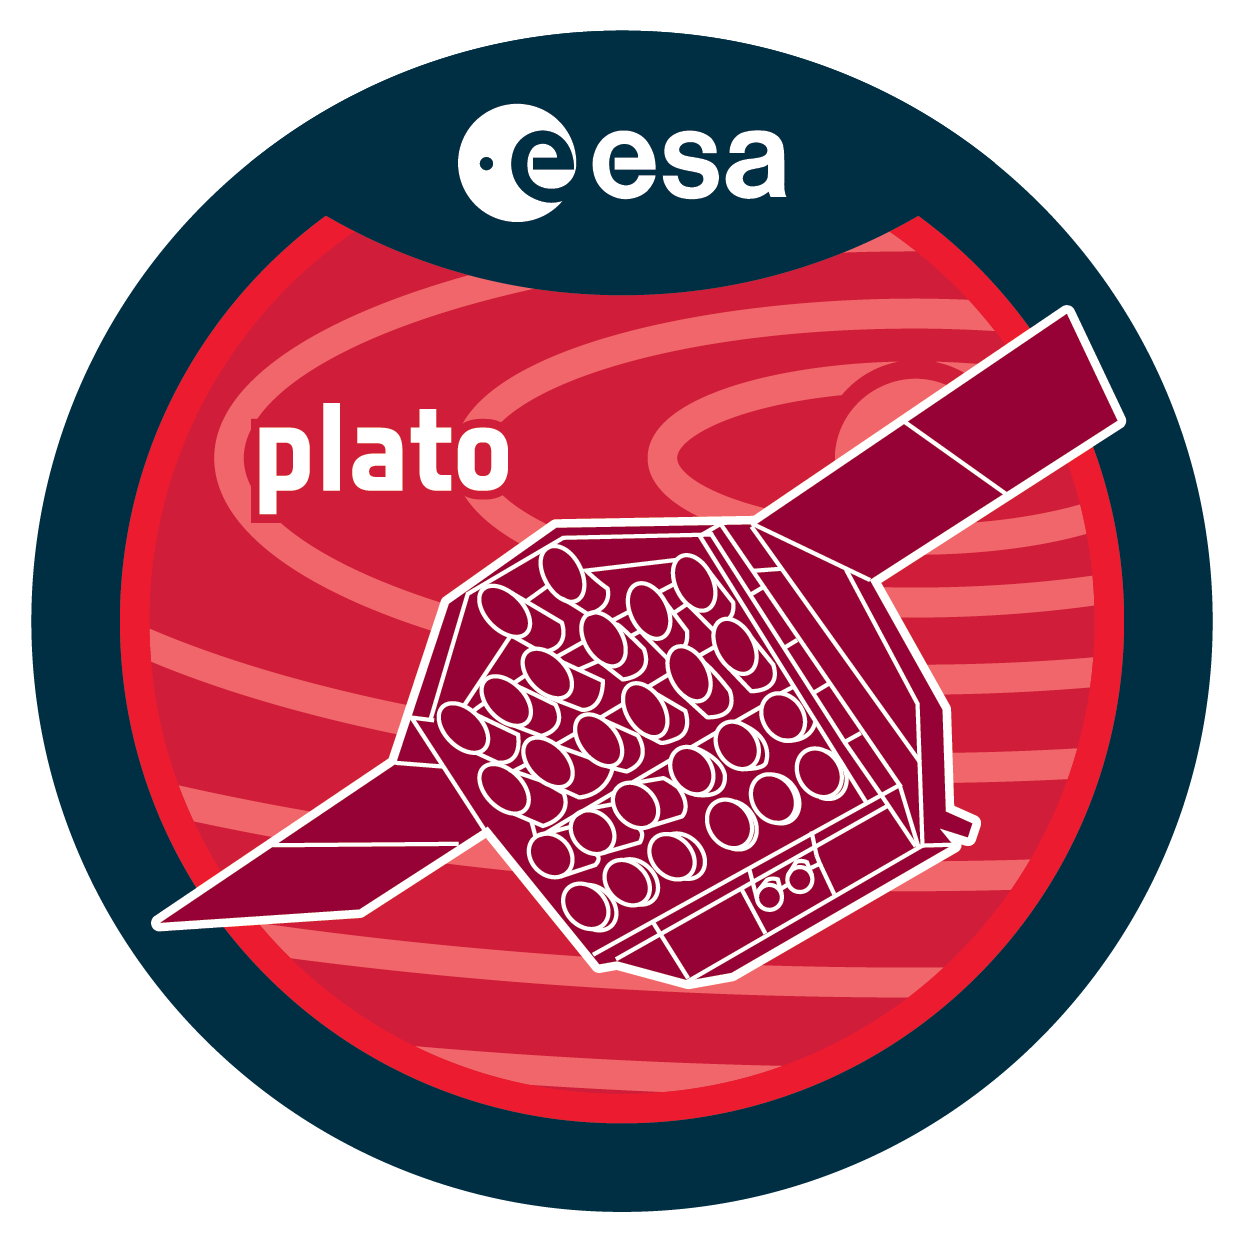 sticker_plato_2017.png